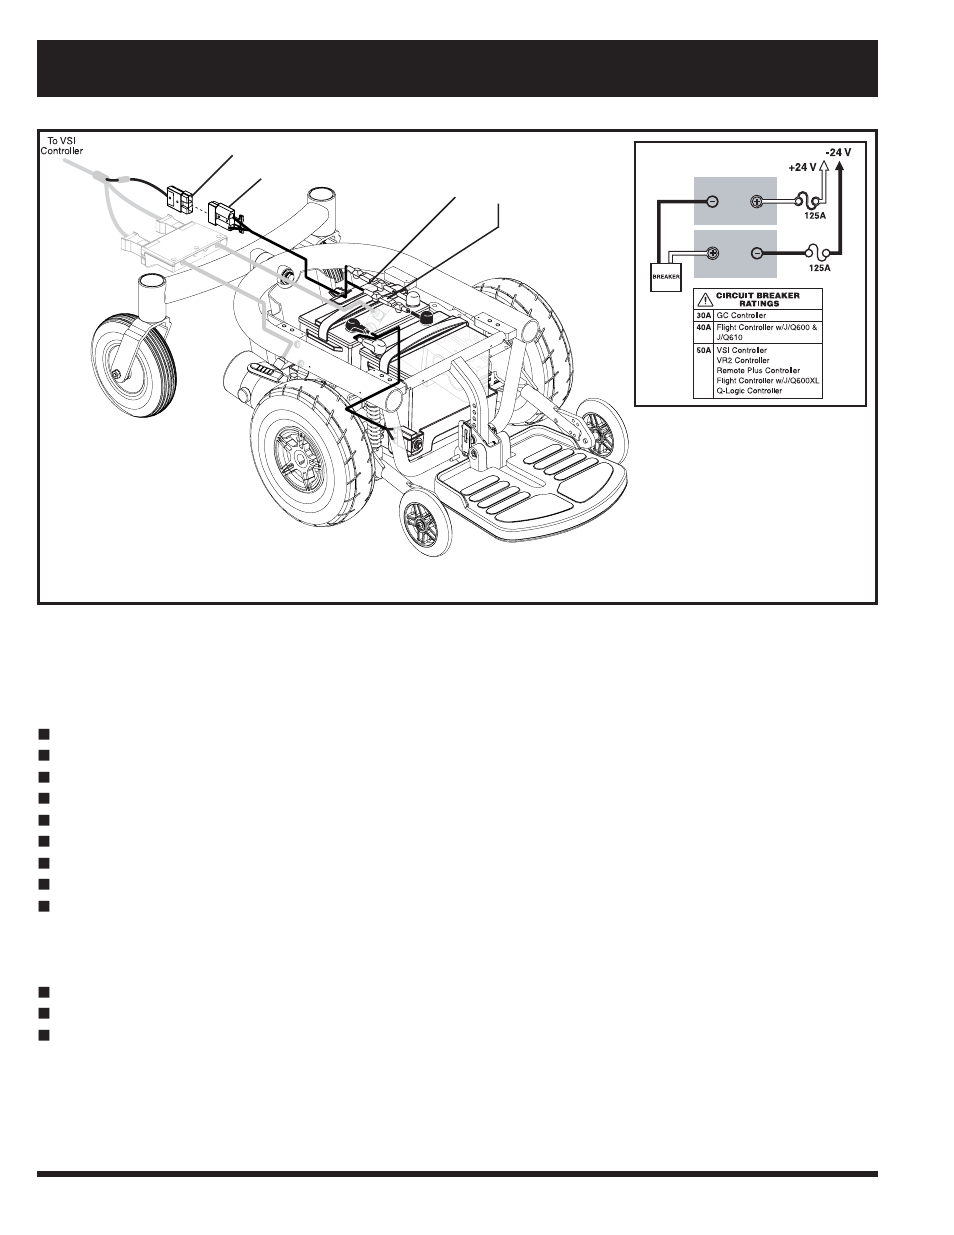 pride mobility jazzy 1103 page40 pride mobility jazzy 1103 user manual page 40 47 also for jazzy 1103 ultra wiring diagram at readyjetset.co